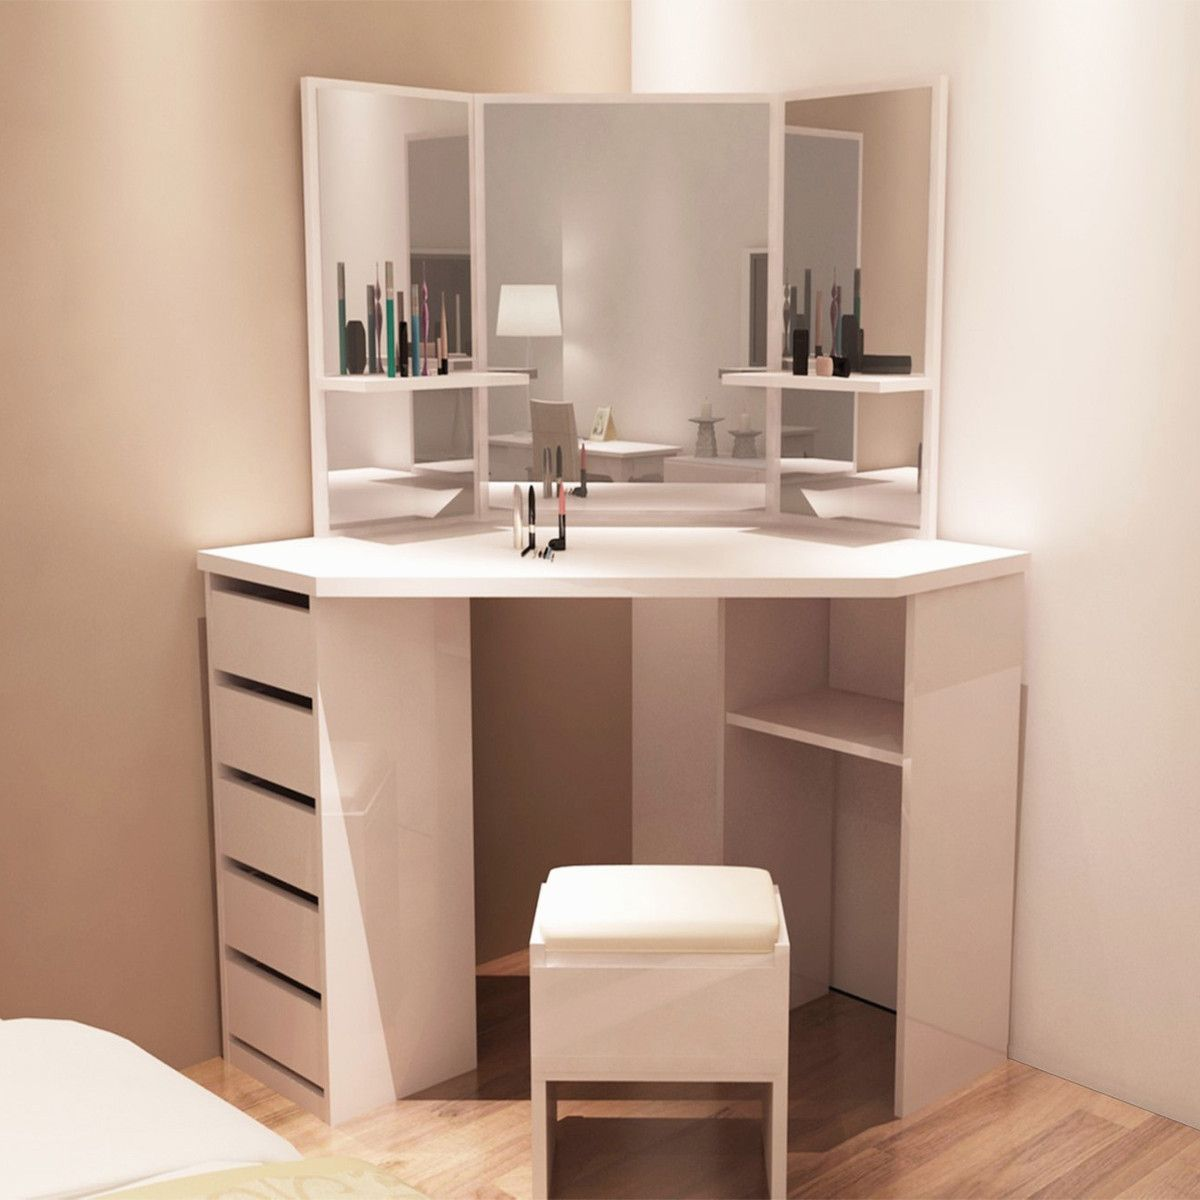 36 New Corner Makeup Vanity With Mirror Corner Dressing Table Furniture Dressing Table Corner Makeup Vanity